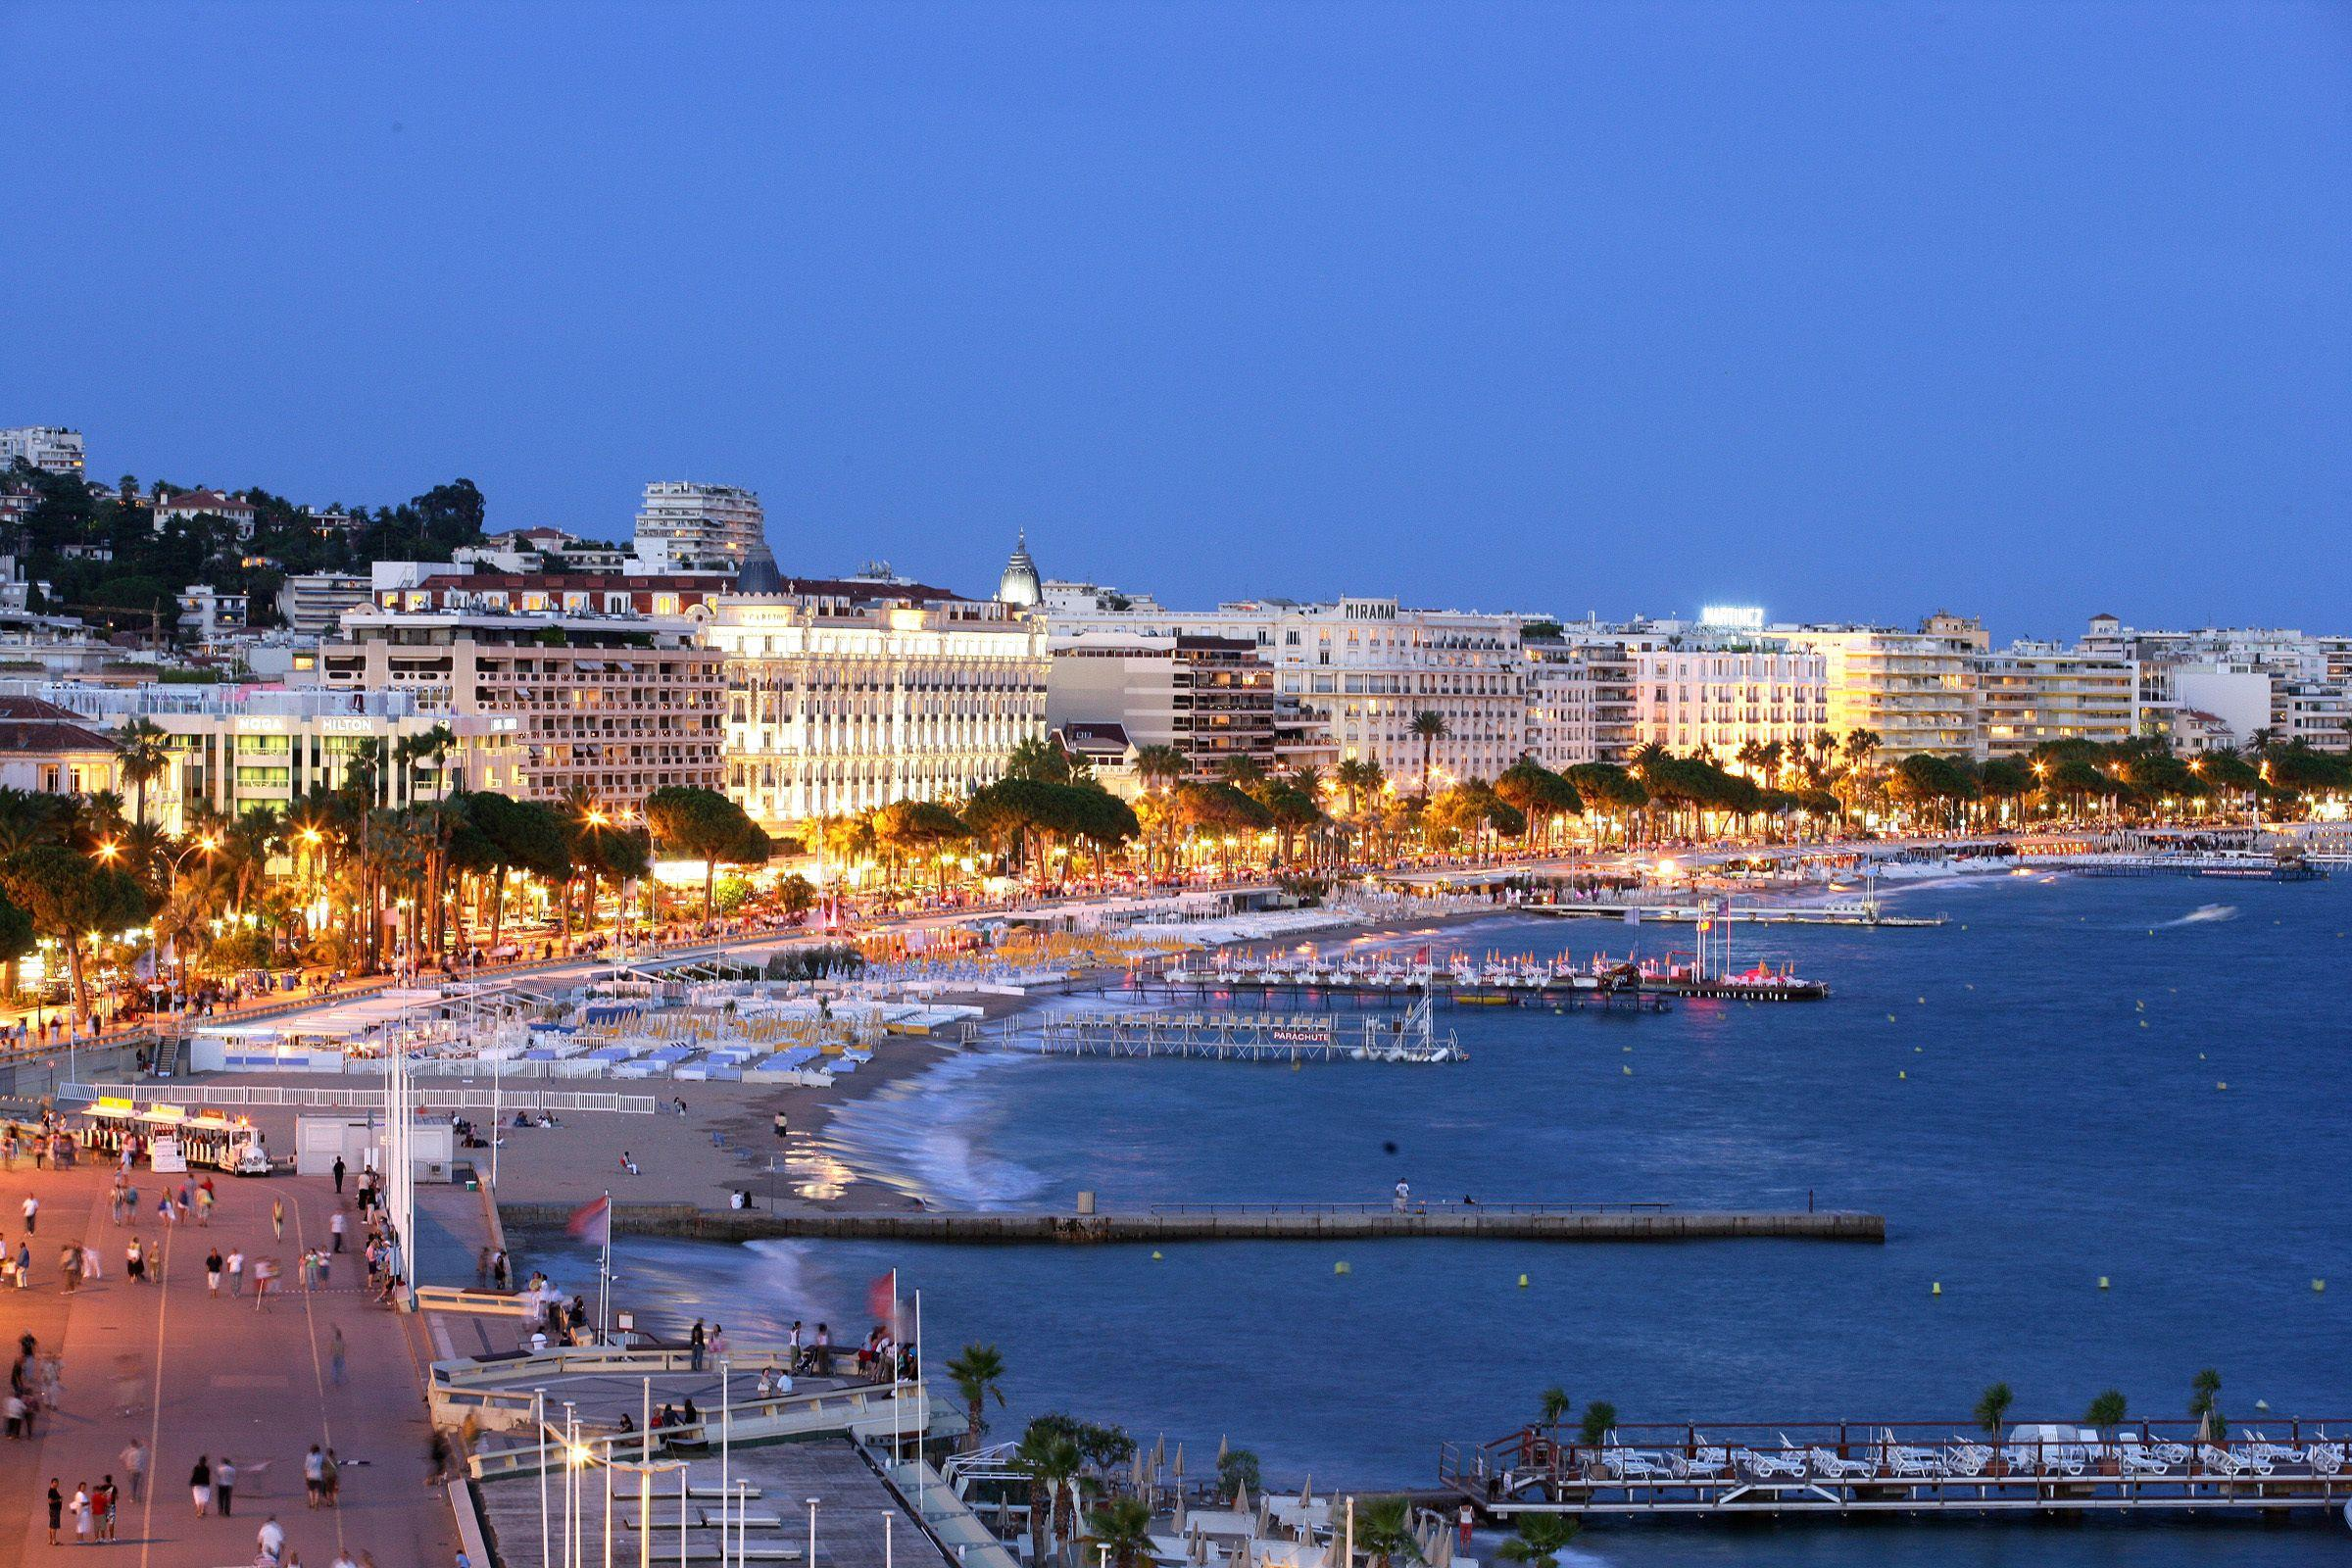 Evening lights in Cannes, France wallpapers and image